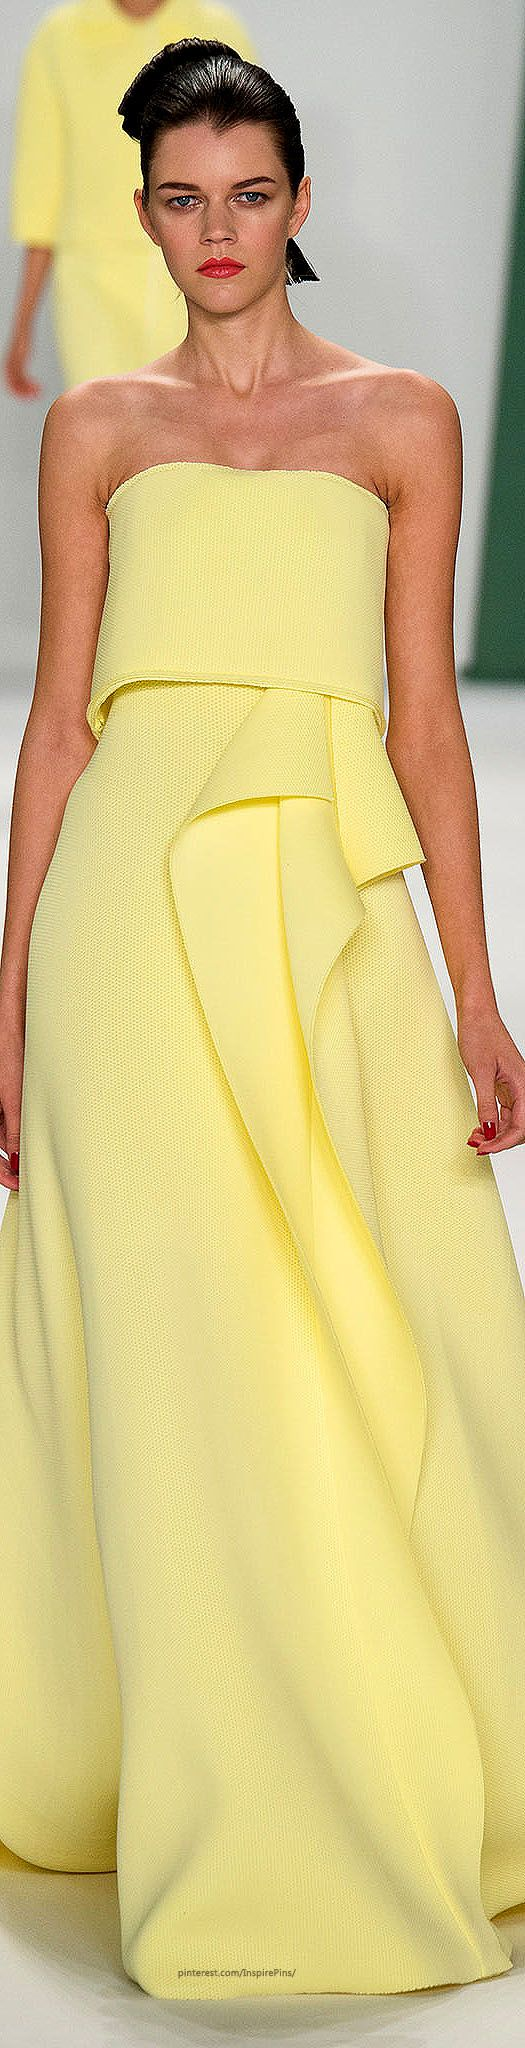 Carolina Herrera Spring 2015 Ready-to-Wear